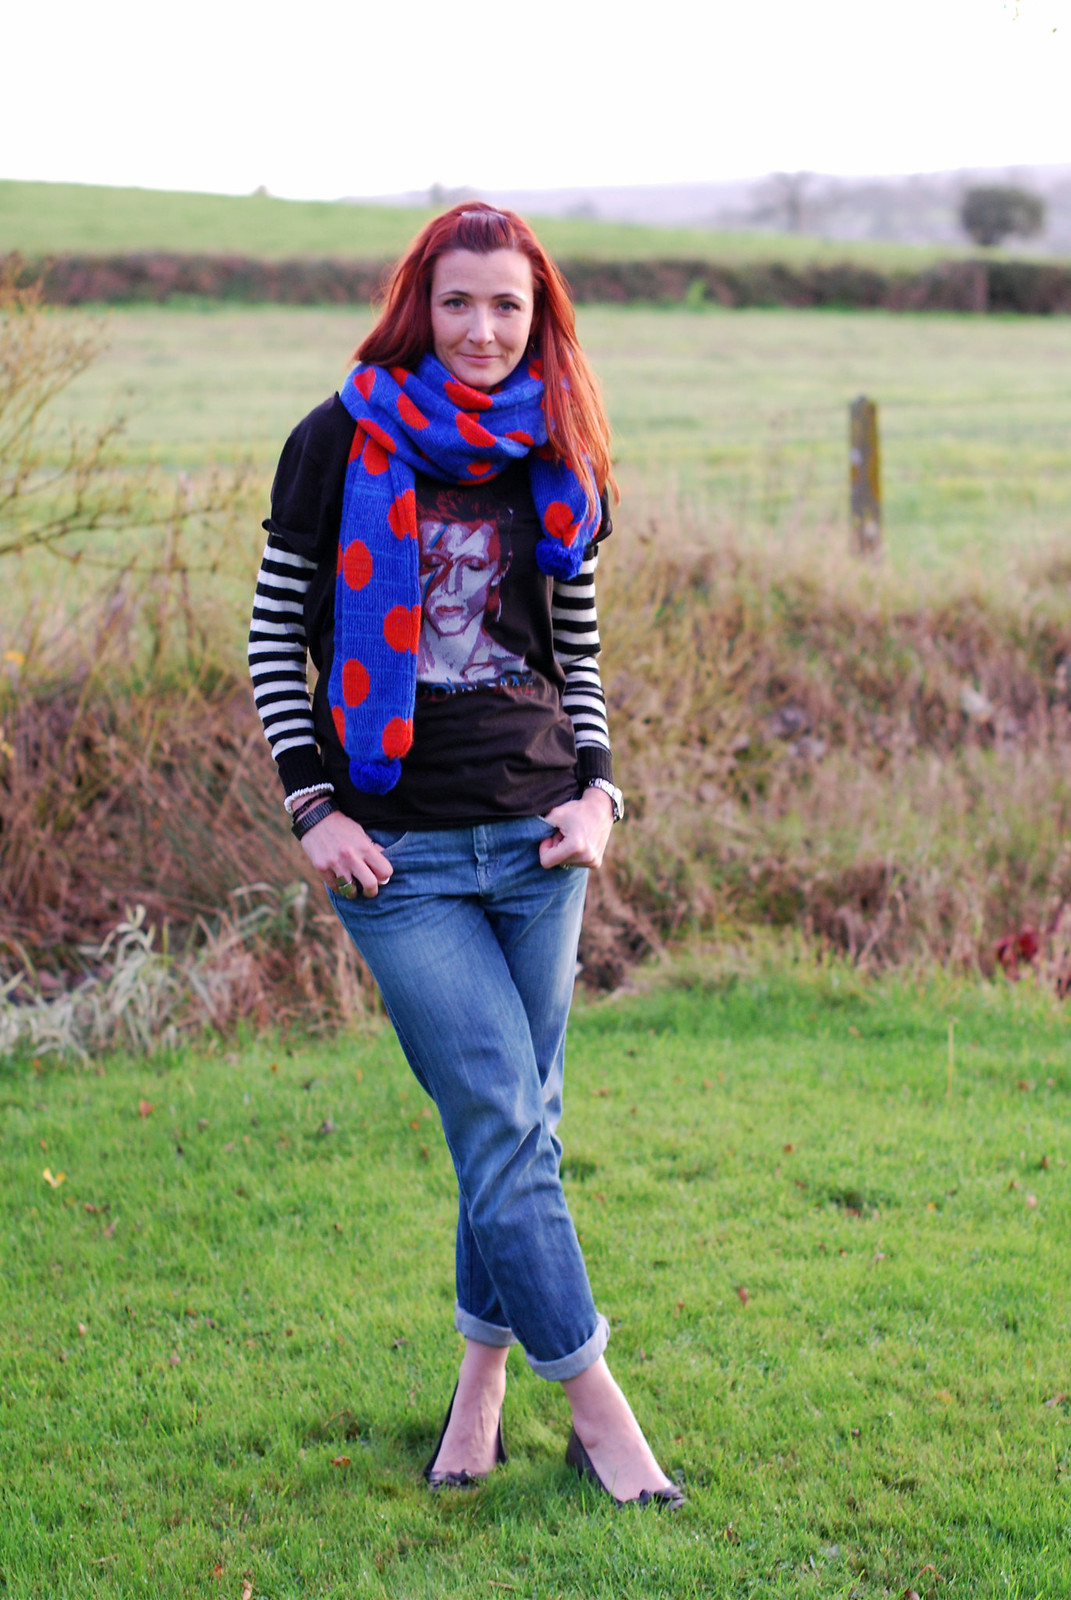 4 Ways to Wear a David Bowie t-shirt | With boyfriend jeans and a polka dot scarf